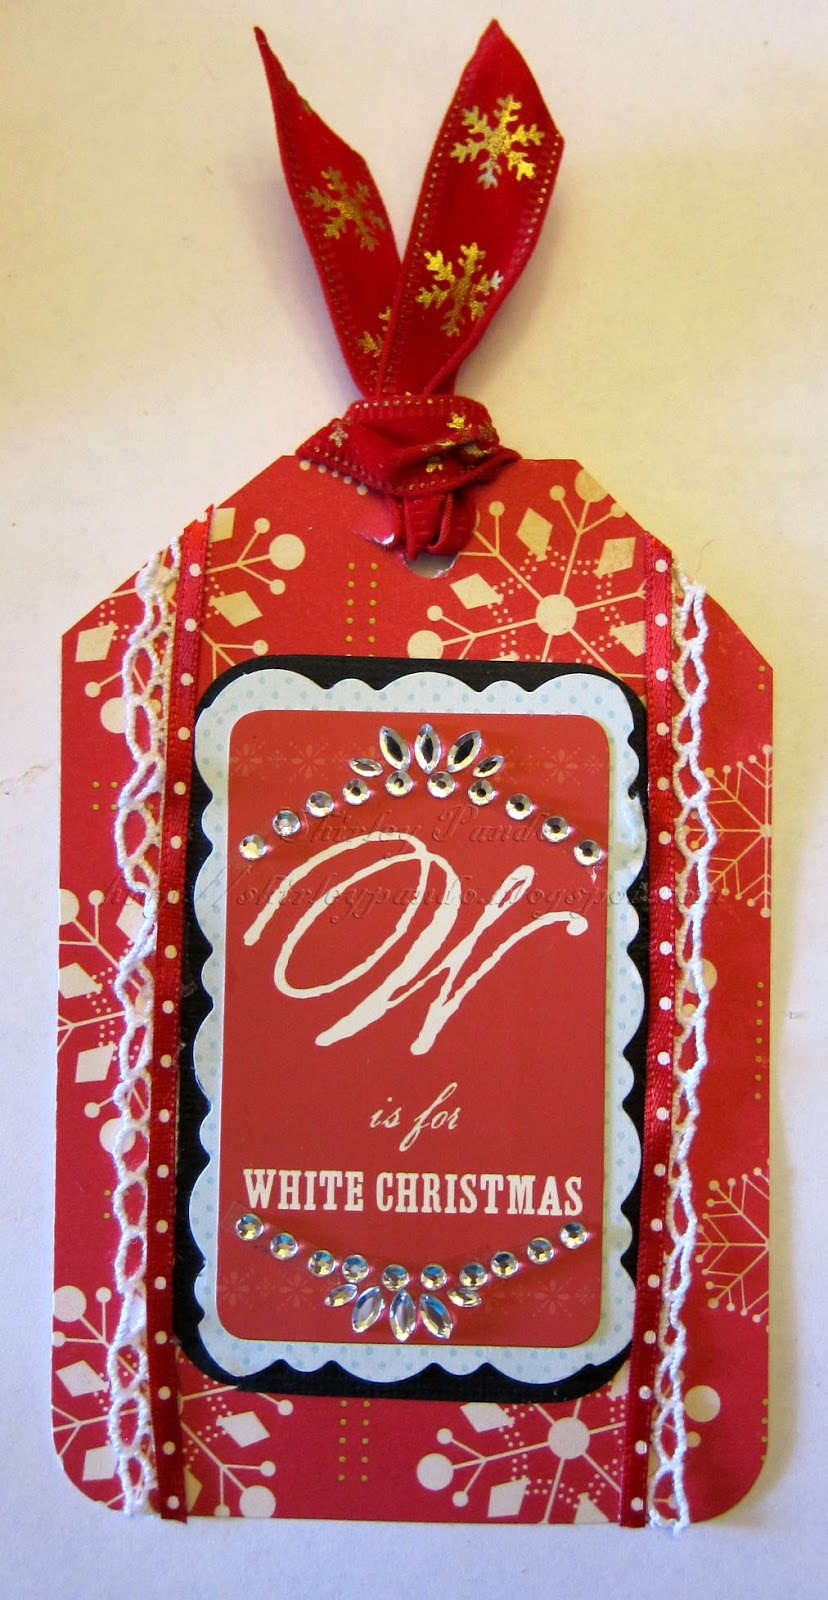 White Christmas tag